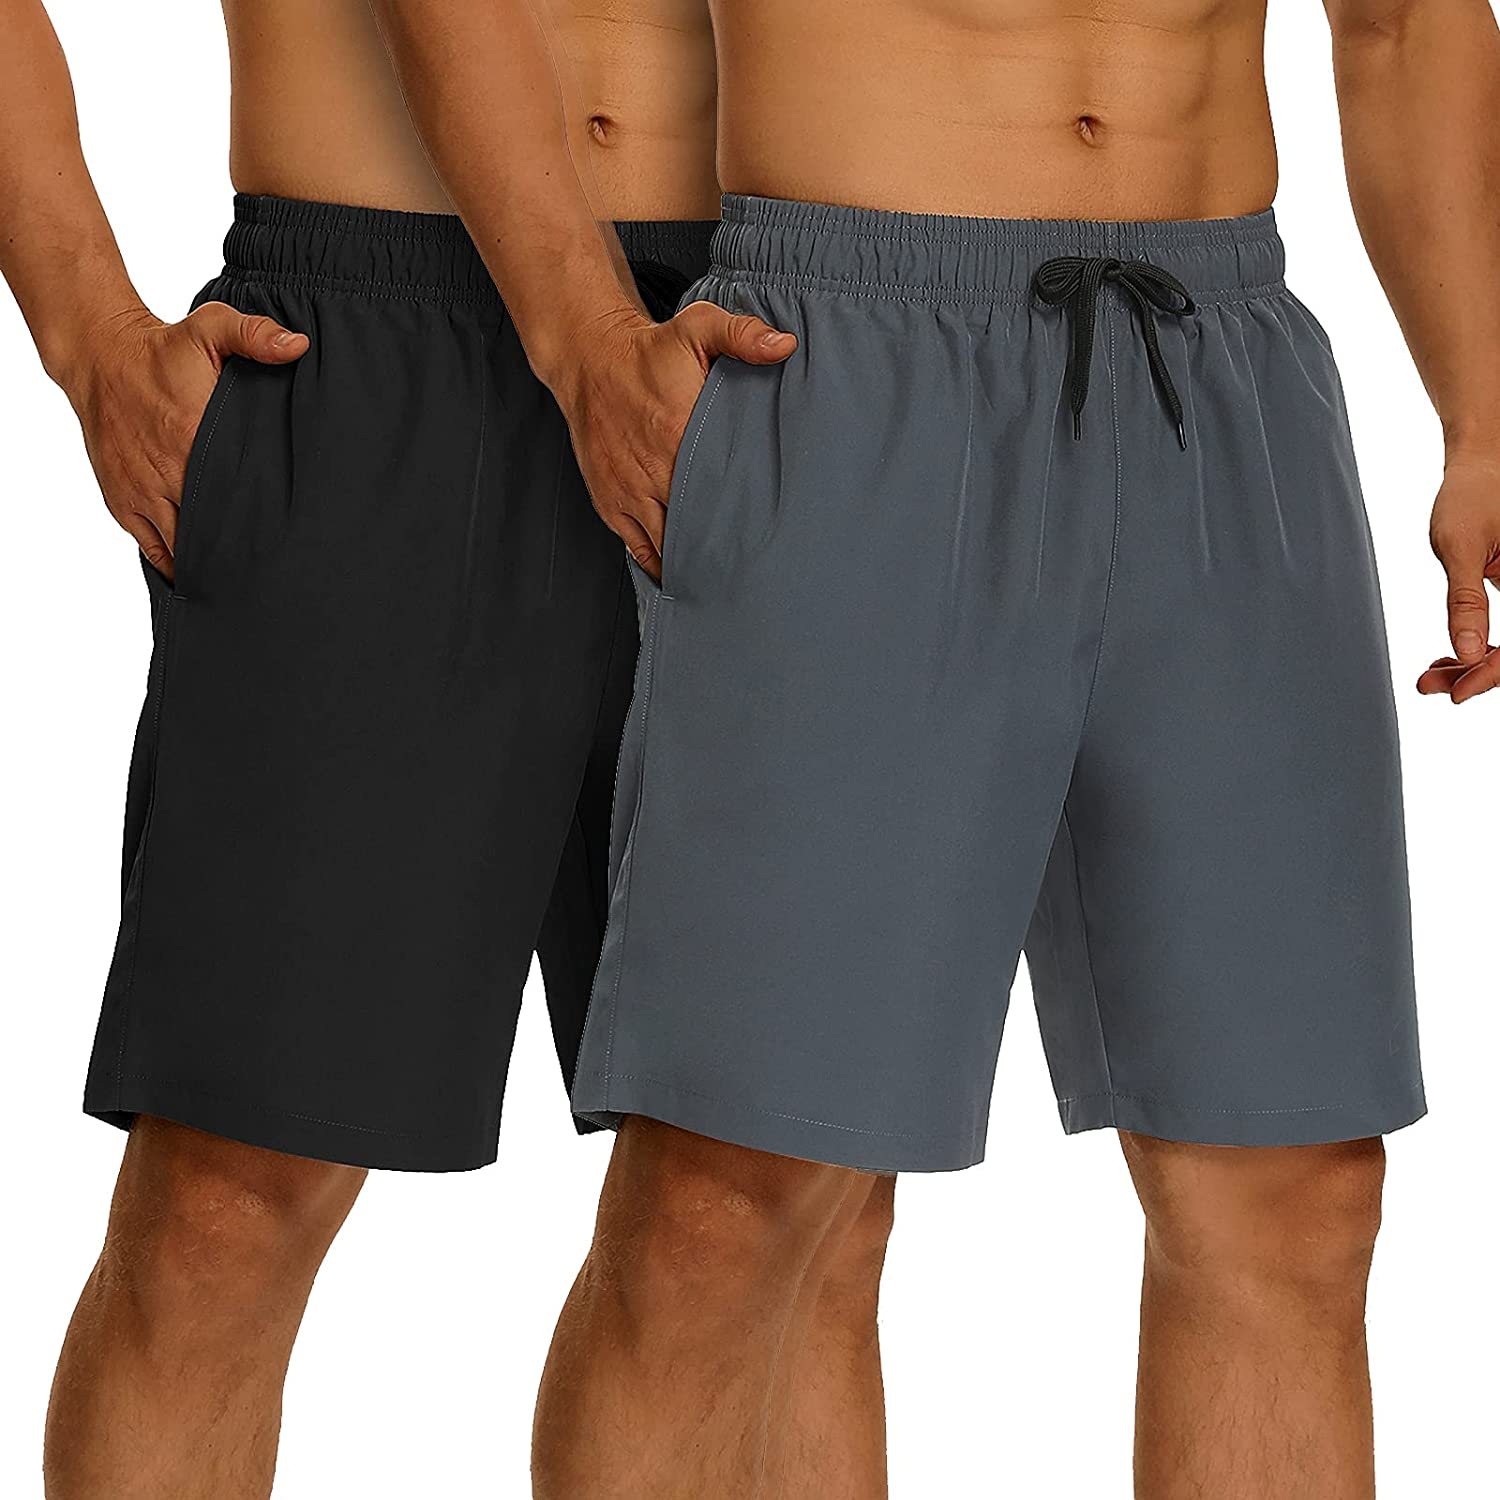 H Hellisal Mens High quality 2 Tulsa Mall Pack Workout 8'' Shorts Athletic Loose-Fit Run